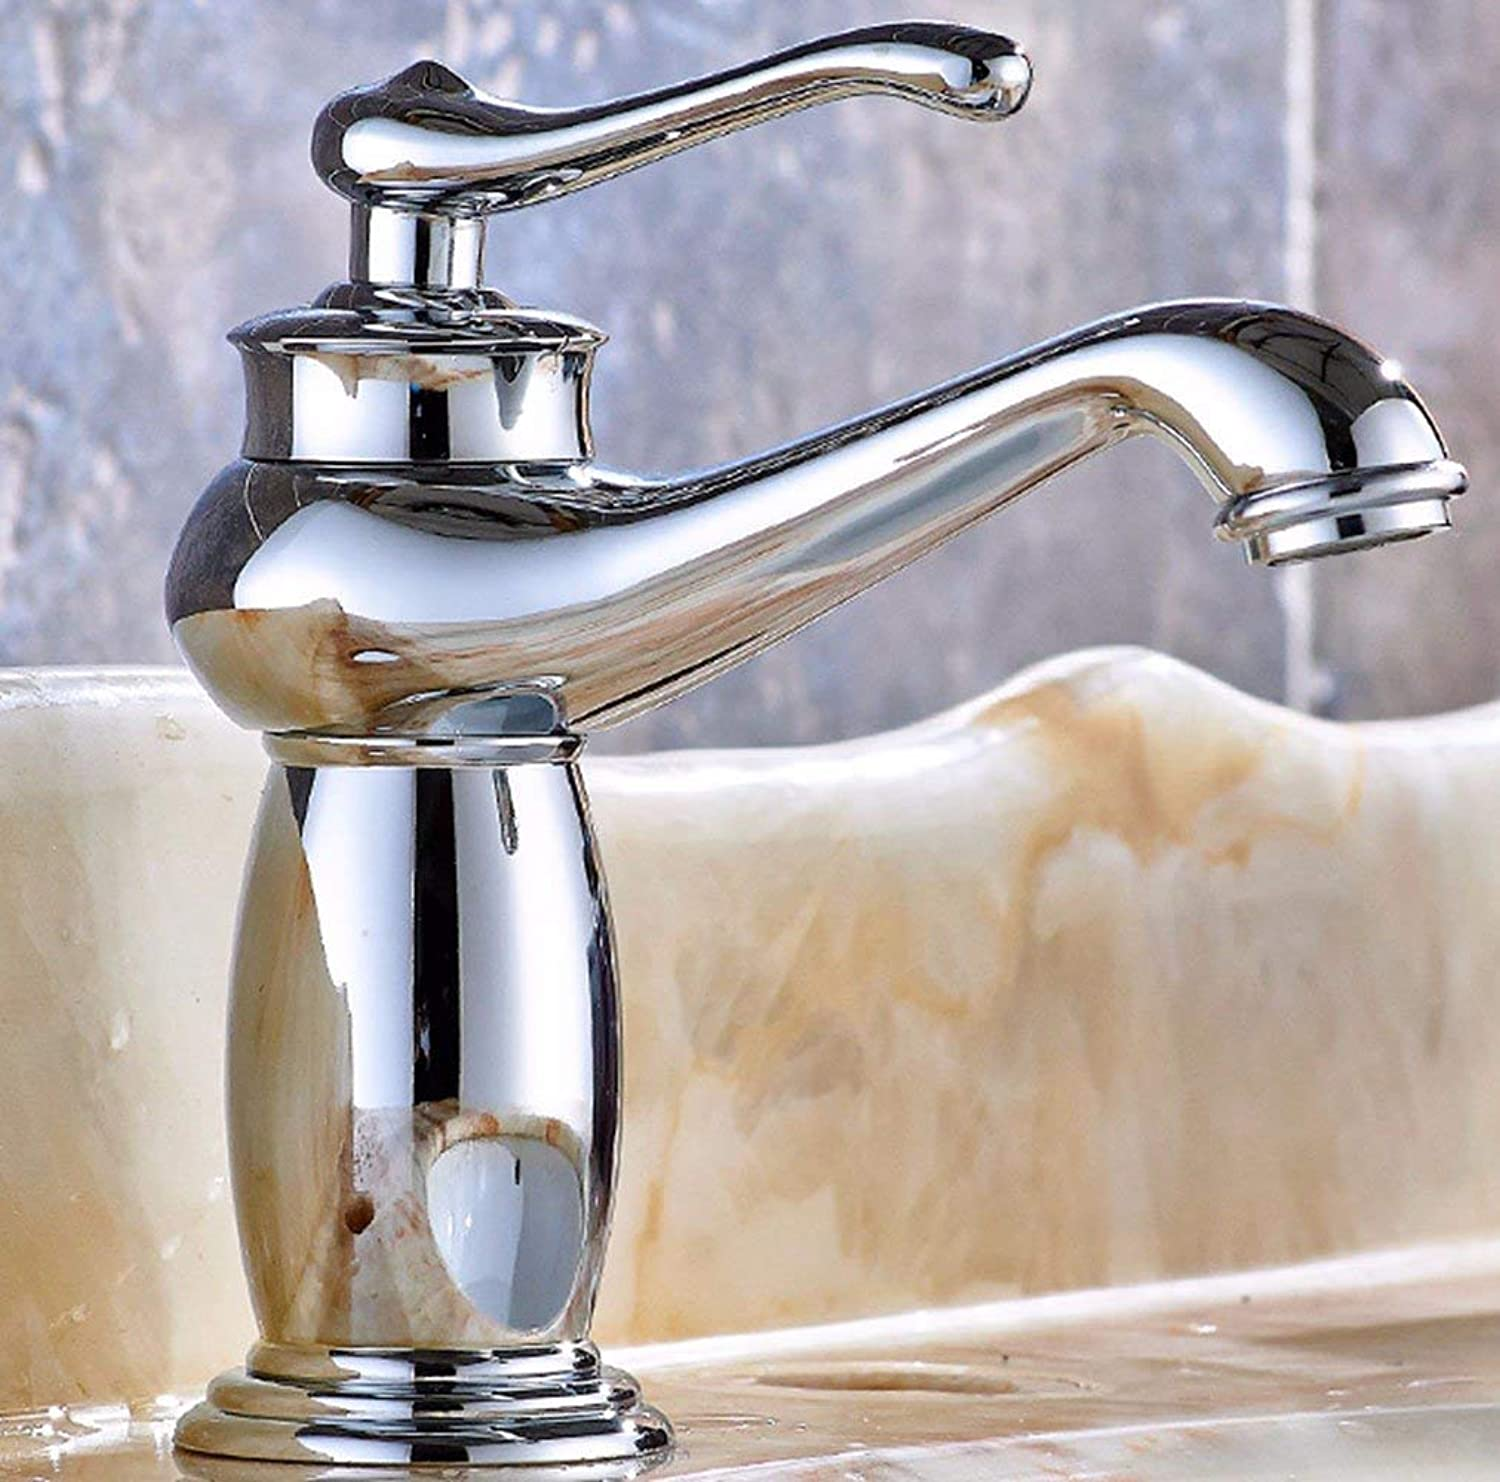 Oudan Copper Retro gold sink porcelain hot and cold Swivel Chrome Plated faucet